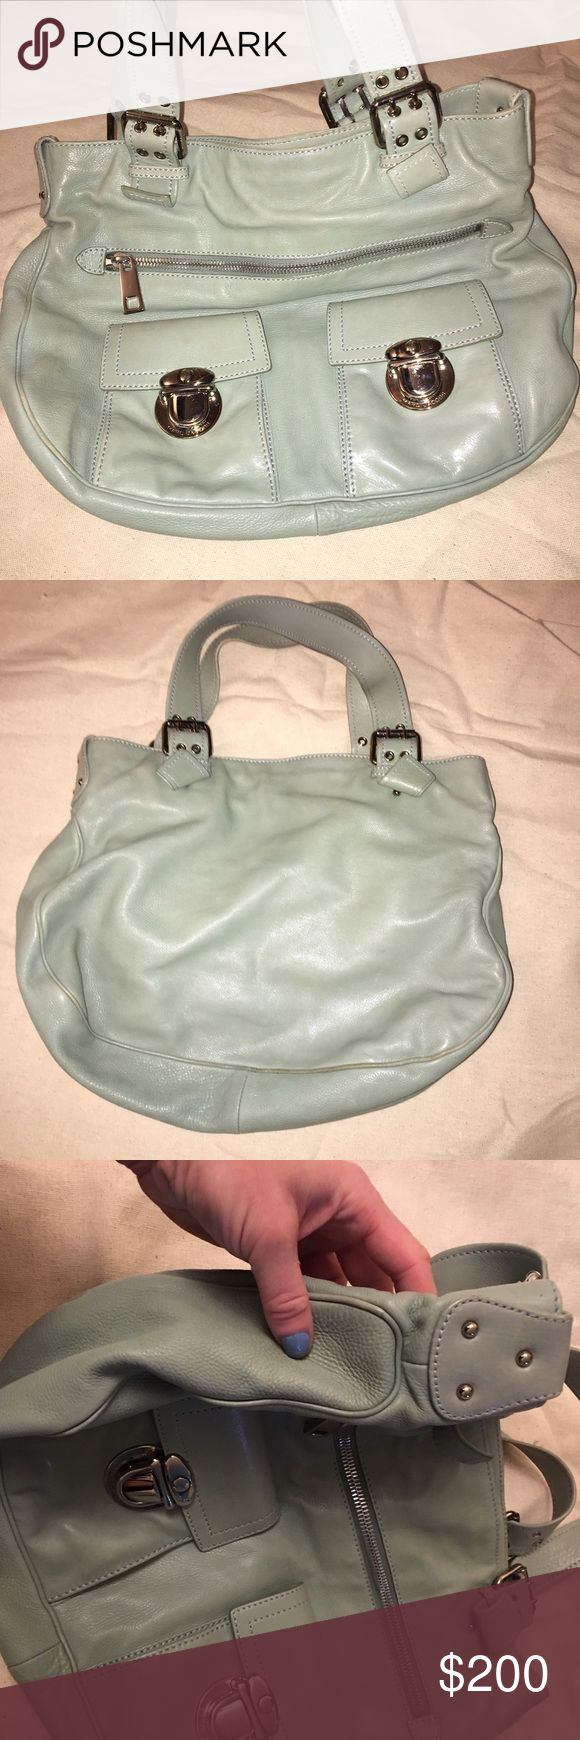 Gorgeous mint green Marc Jacobs Shoulder Bag EUC Marc Jacobs leather shoulder bag in GREAT condition. A few light marks on interior (see photo) and minor wear on seam on bottom (see photo) but hardly noticeable. This is a great bag for work or play- it holds a TON! Marc Jacobs Bags Shoulder Bags